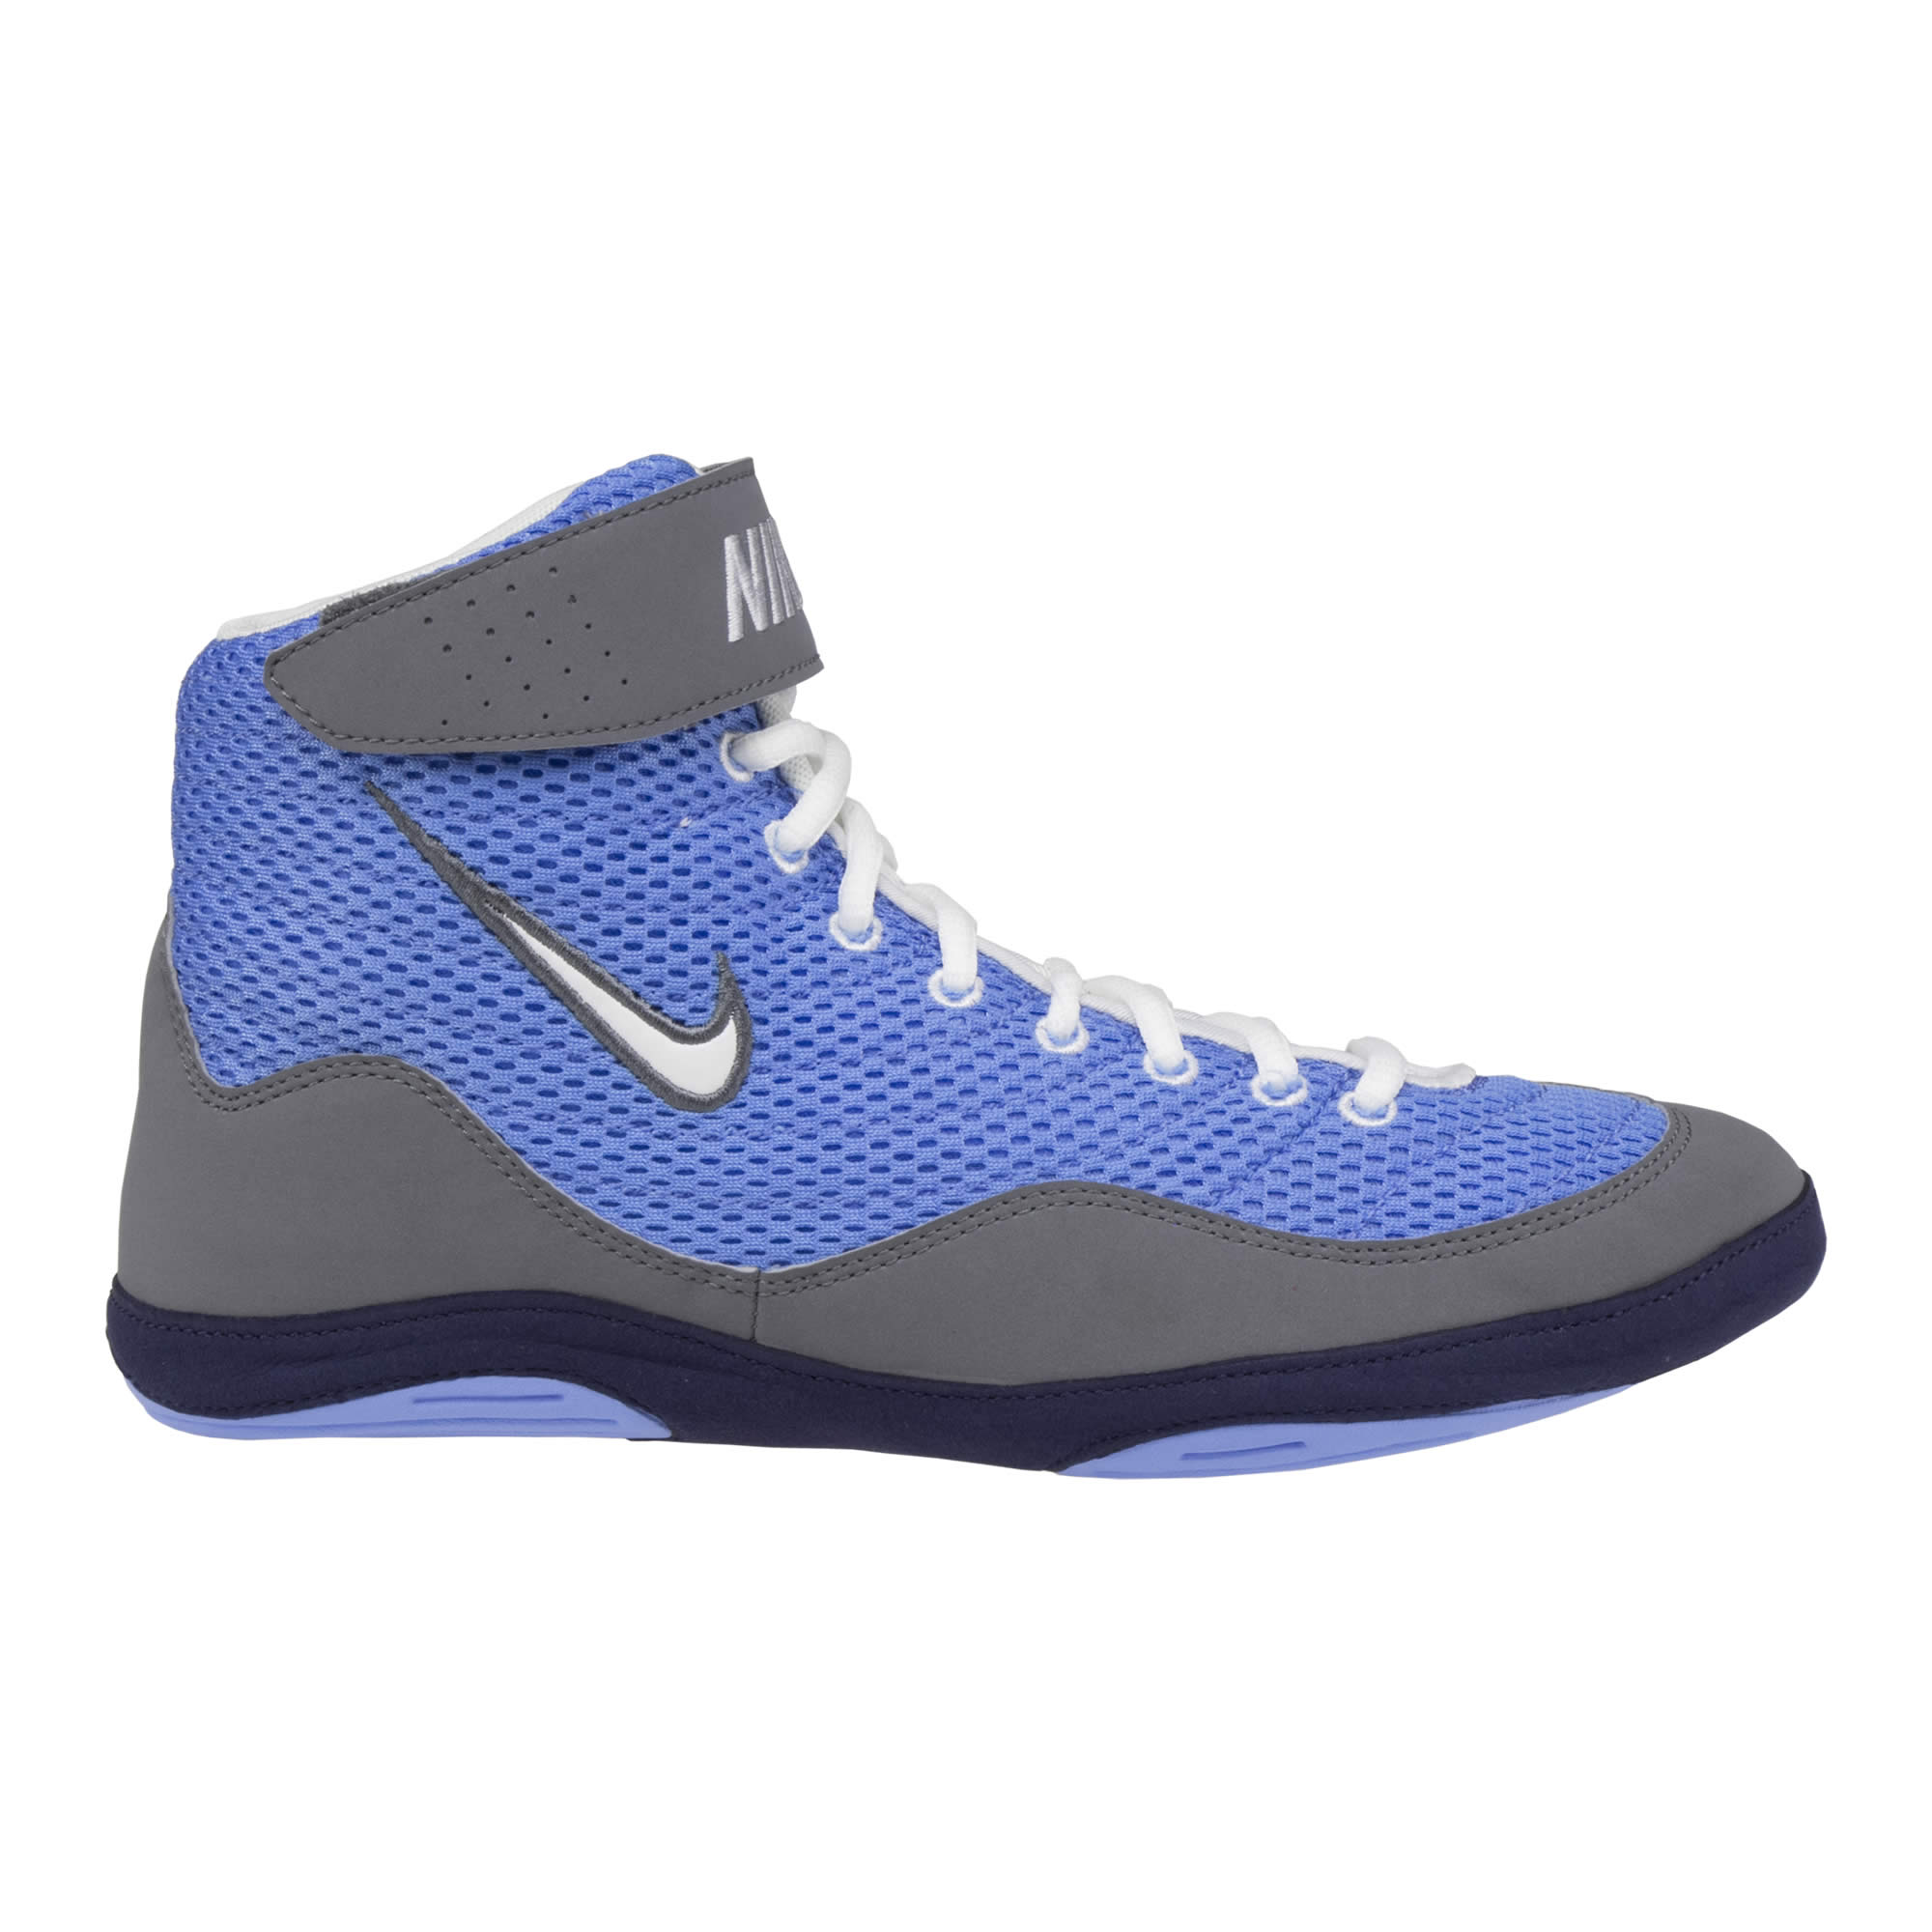 Royal Blue And Gold Wrestling Shoes